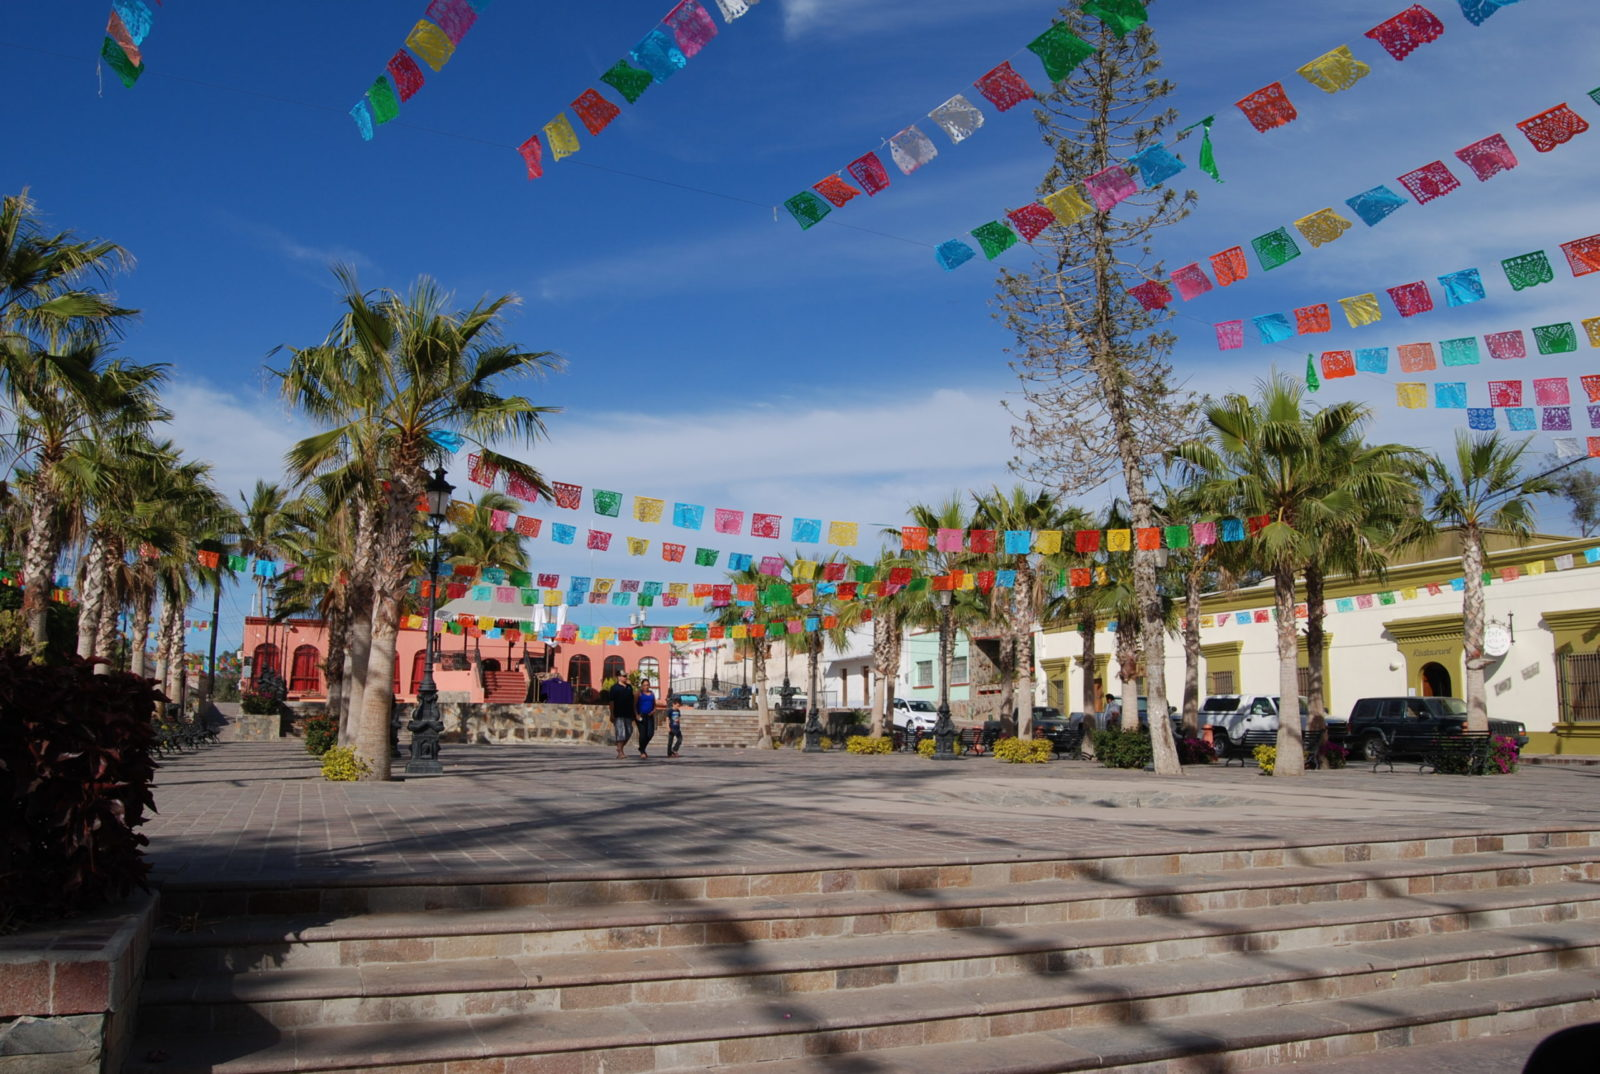 Festive Town Plaza in El Centro a leisure 25 minute stroll from Casa Oasis Todos Santos Vacation Rentals